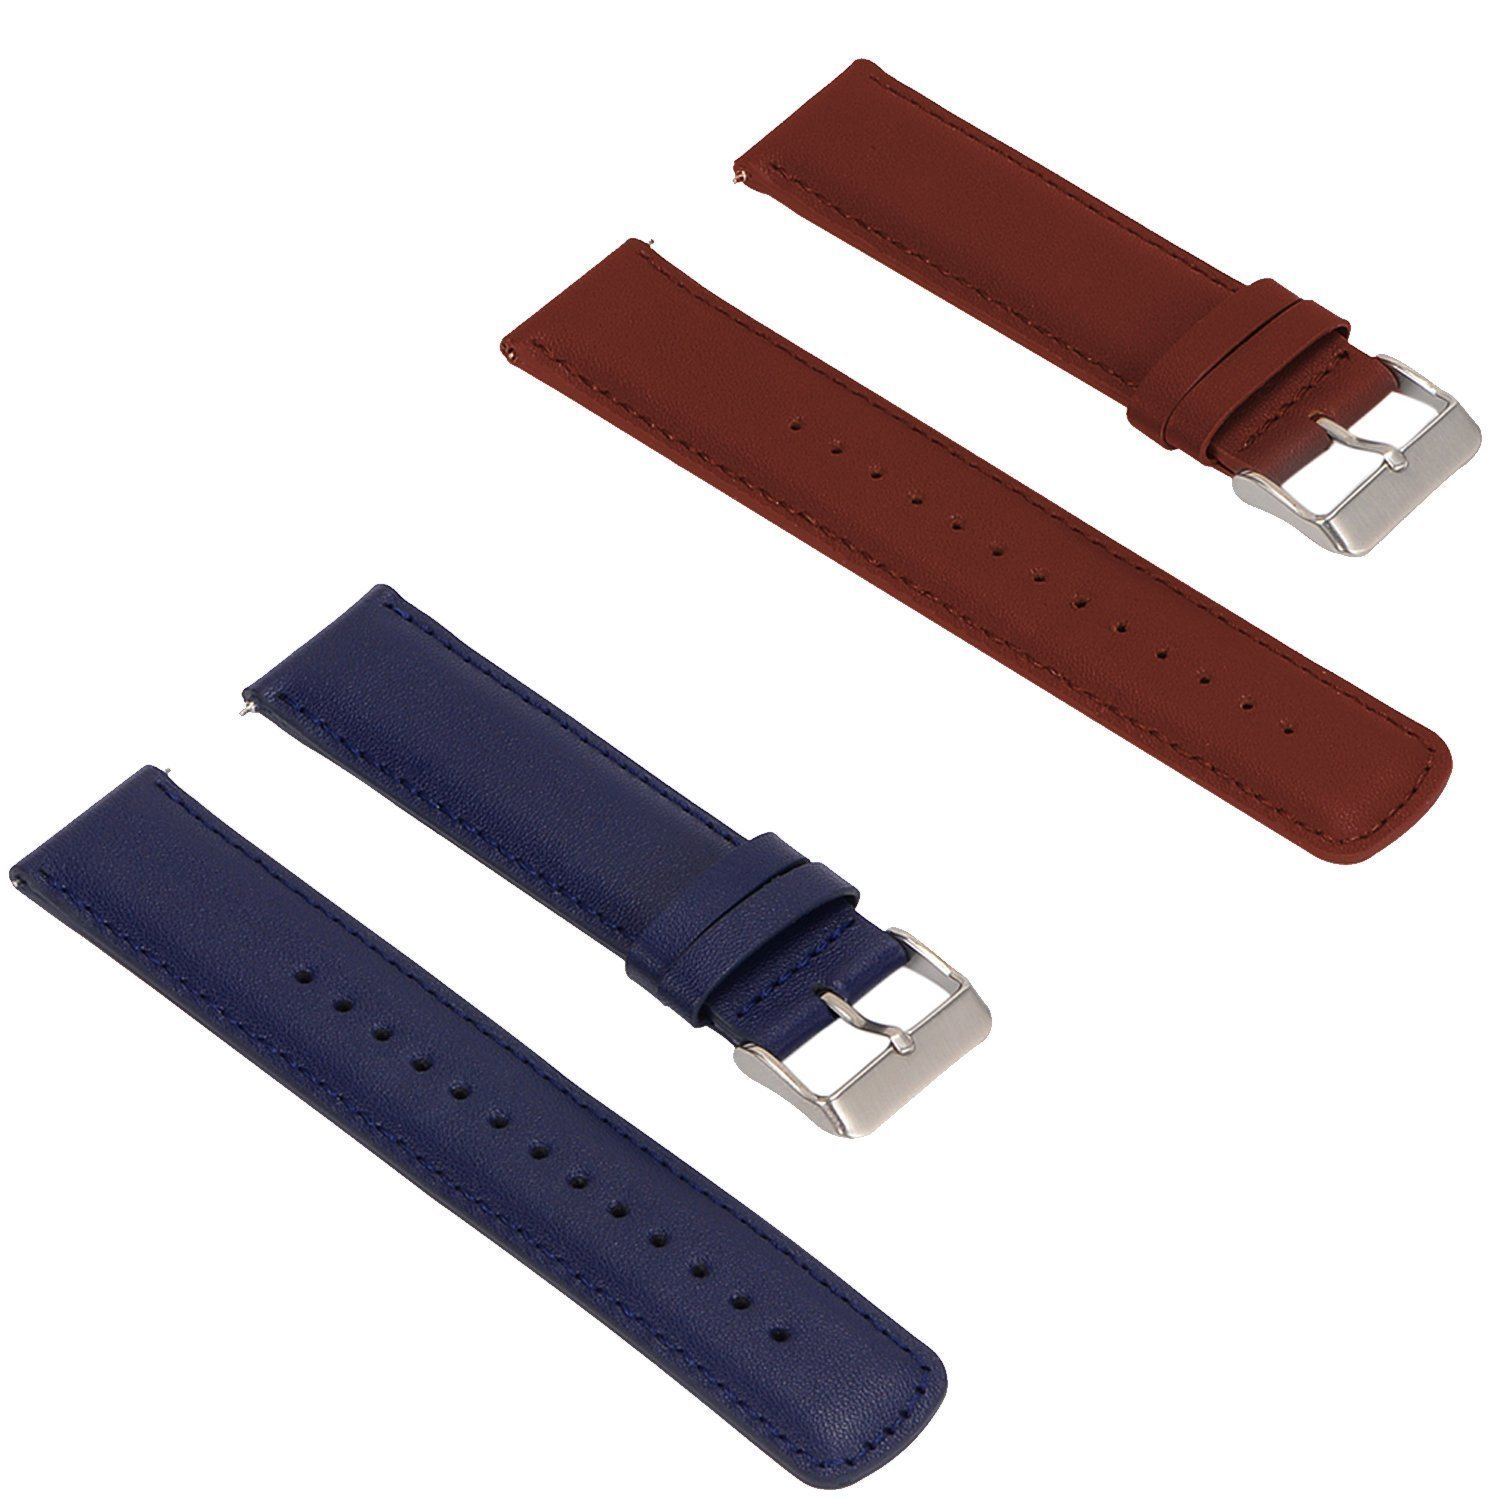 Turnwin for Amazfit Pace Straps Wristbands, 2pcs Replacement Leather Bands for Amazfit Pace Only (Blue+Brown)